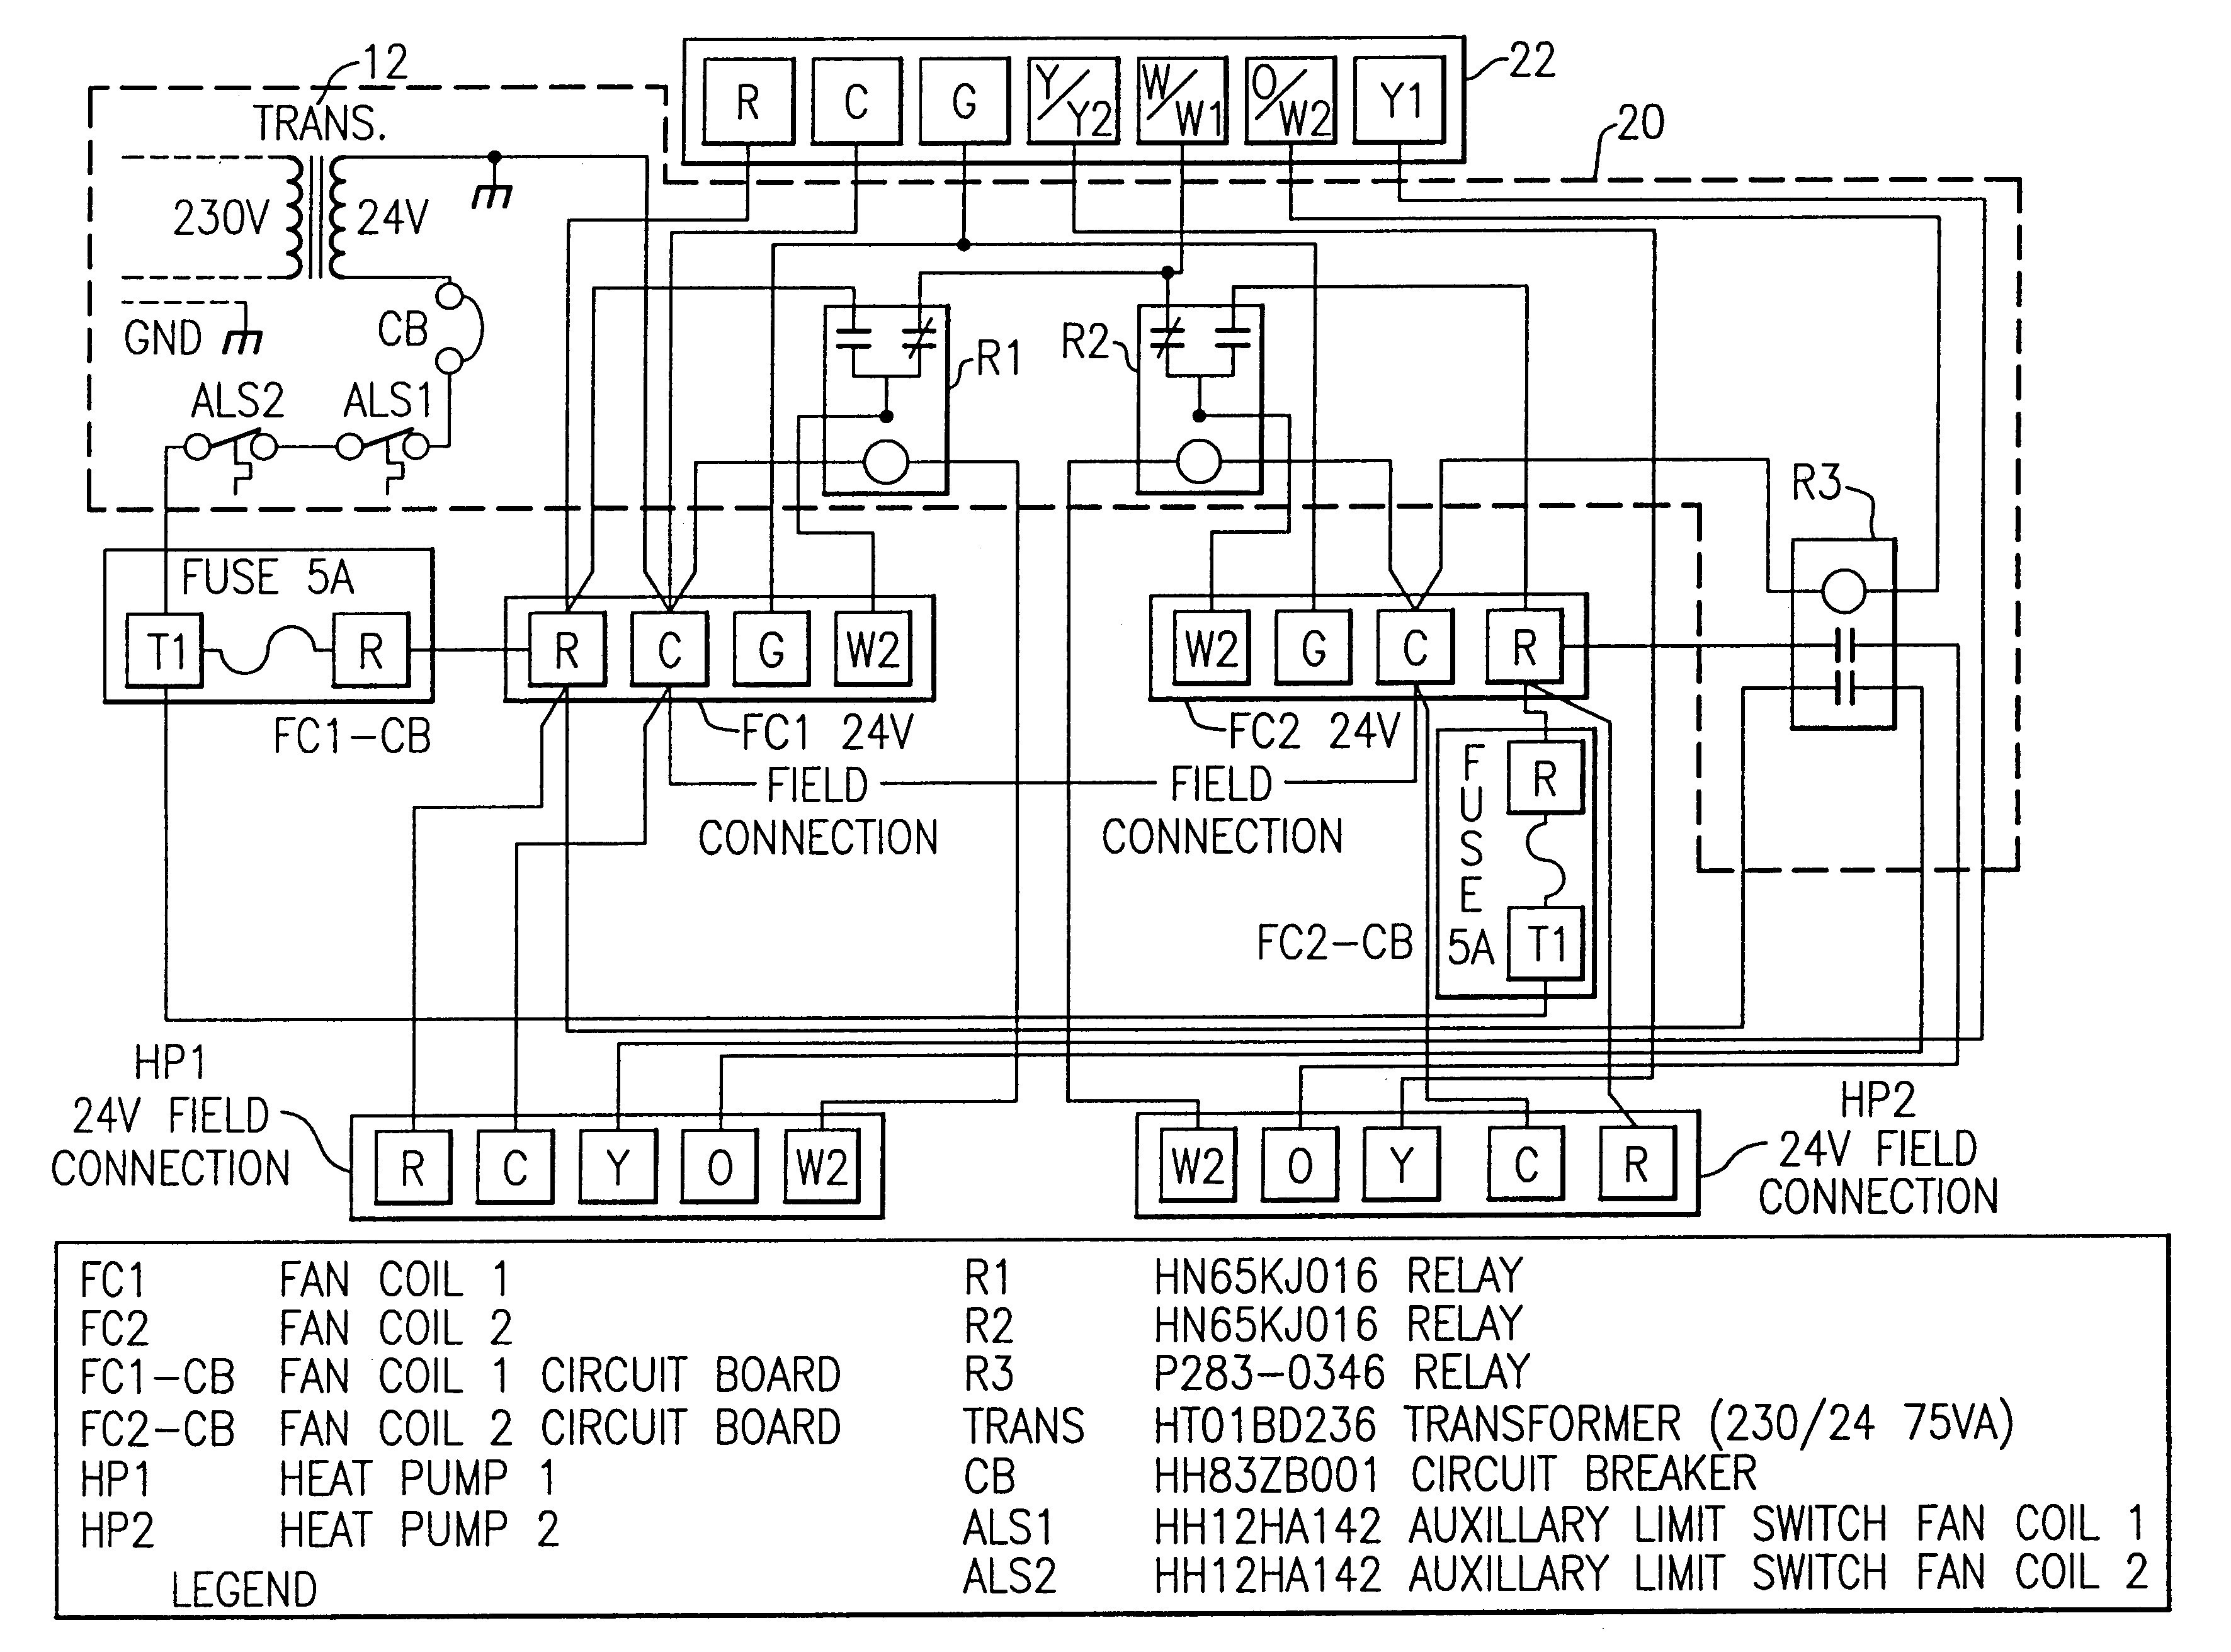 Stage Wiring Diagram on speed single phase motor, light fluorescent lamp ballast, channel car amplifier, way switches,